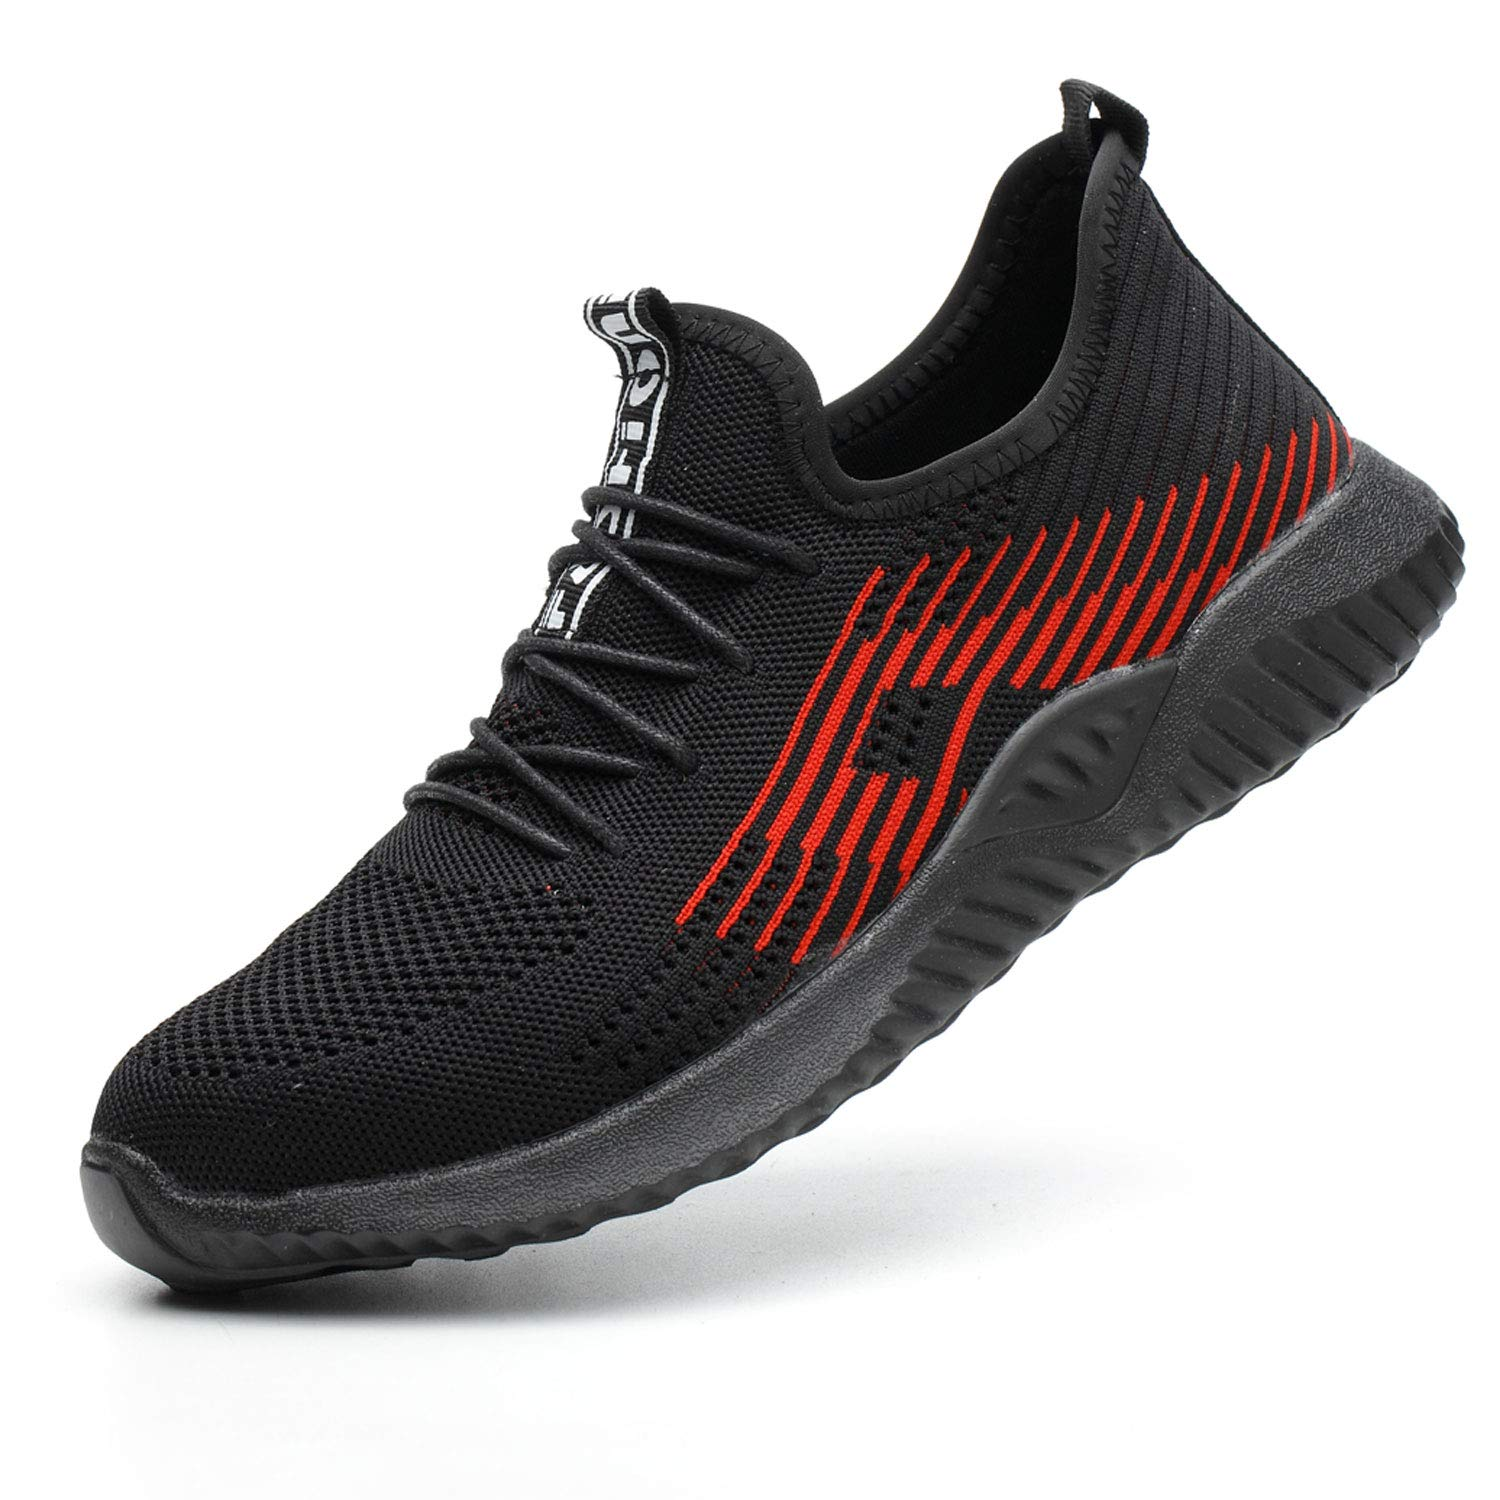 SUADEX Indestructible Shoes Work Safety Shoes for Men Womens, Steel Toe Shoes Lightweight Breathable Toe Sneakers Construction Working Shoes for Hiking Trail Tennis Black Size 13.5 Women / 12 Men